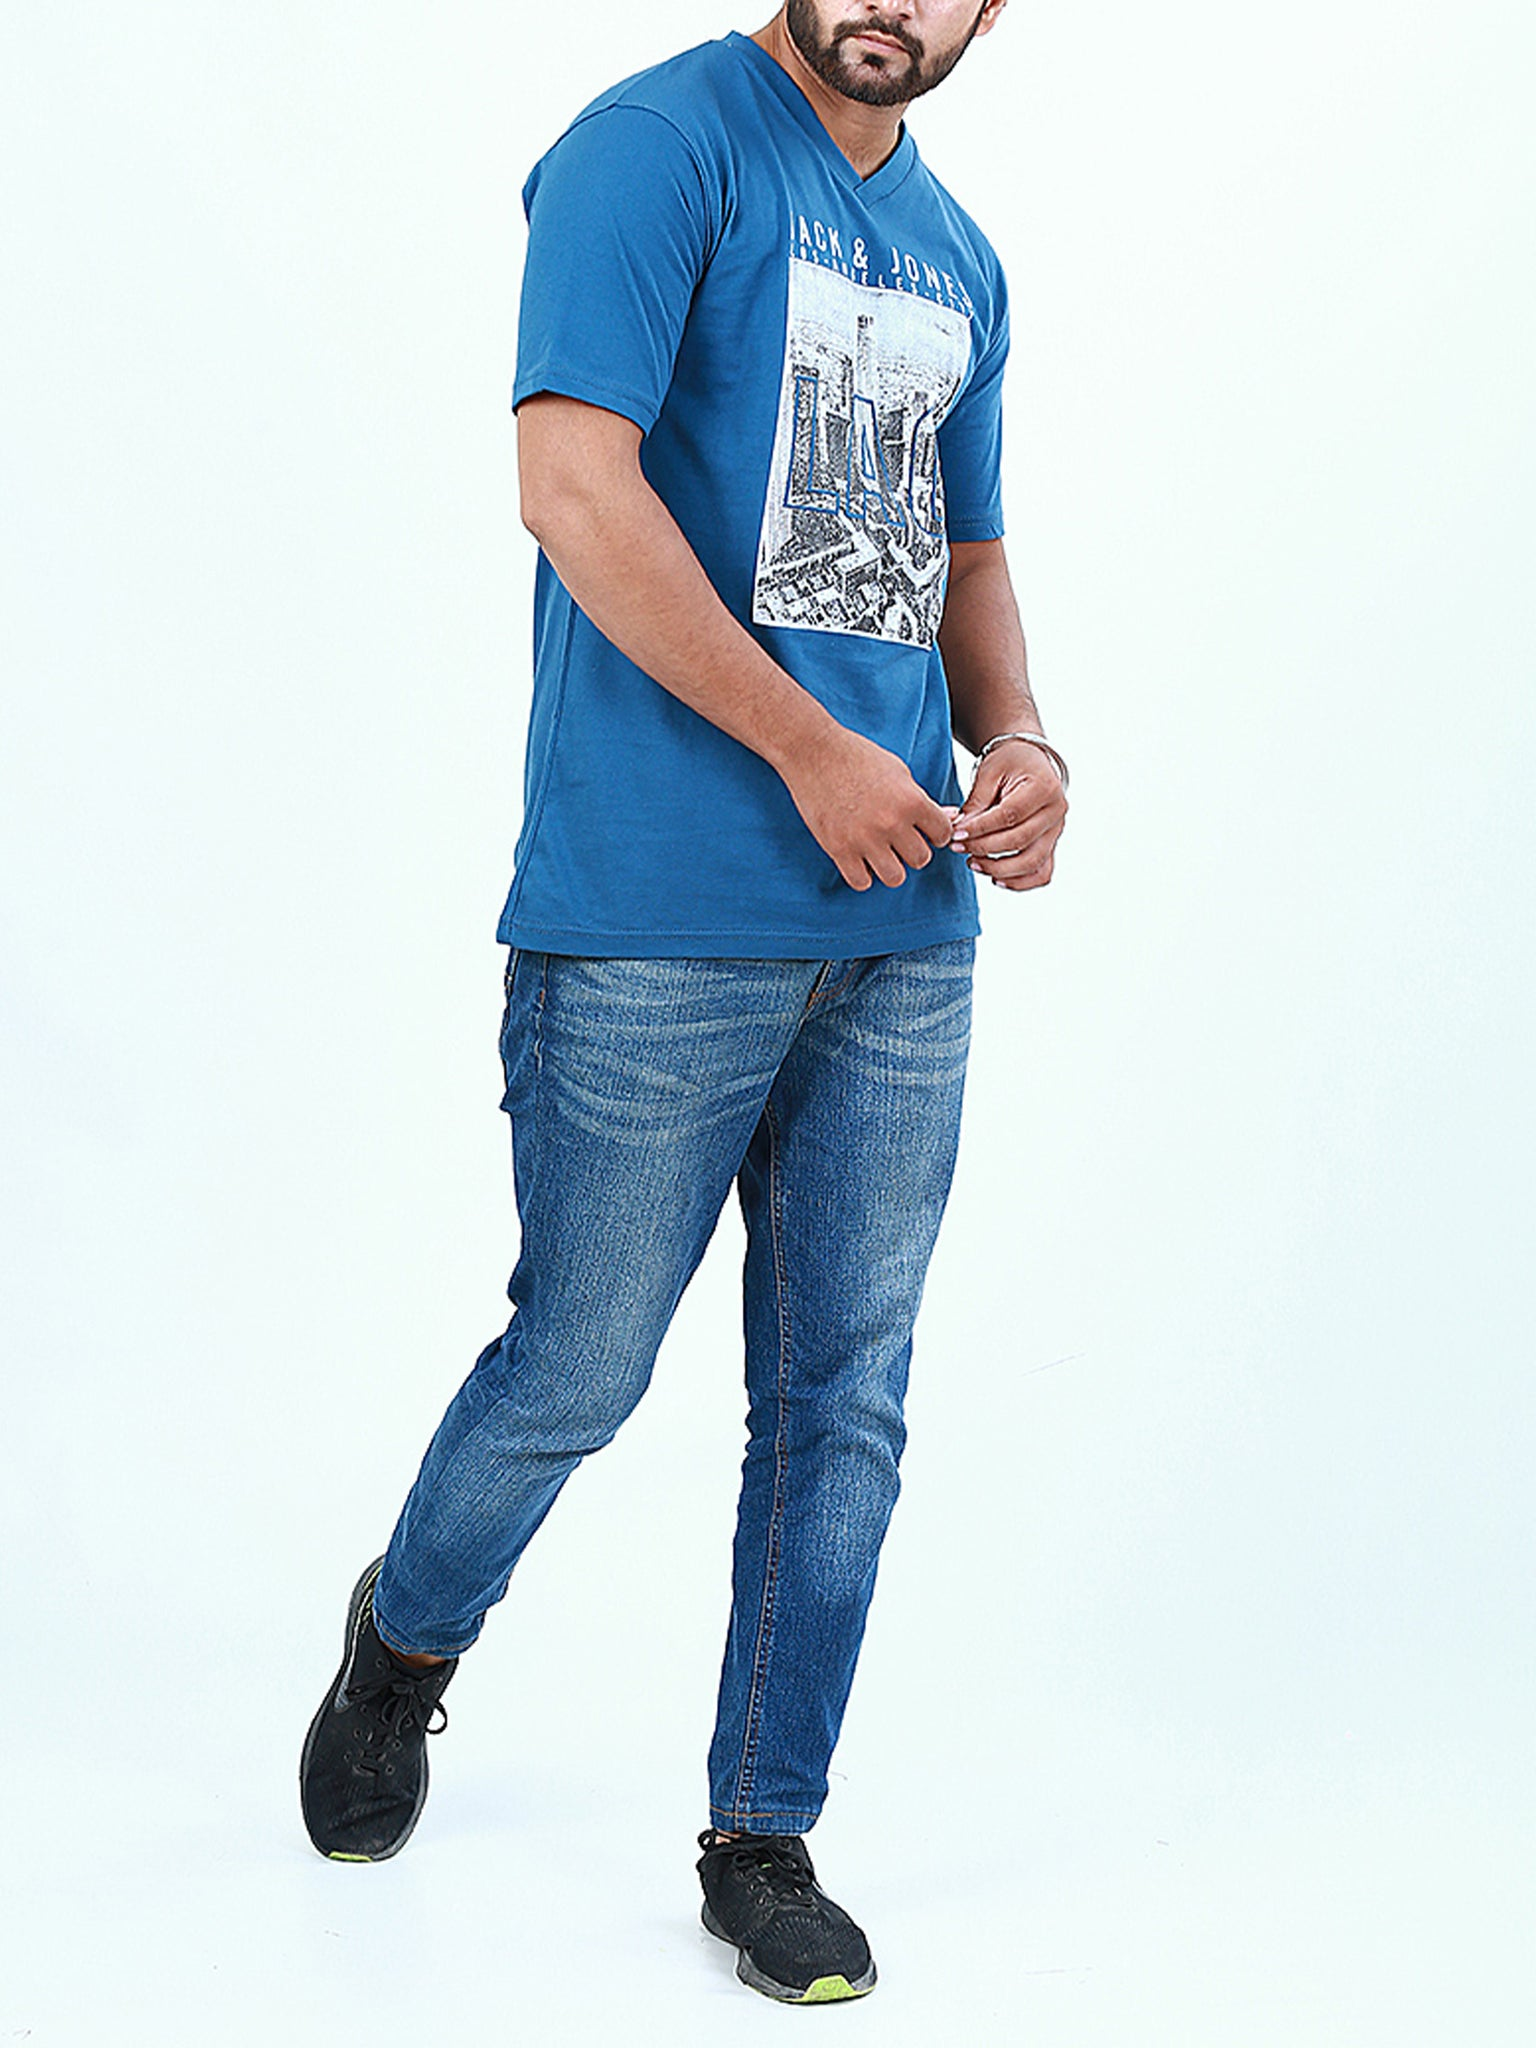 T-Shirt V-Neck for Men Printed LAC Bright Blue